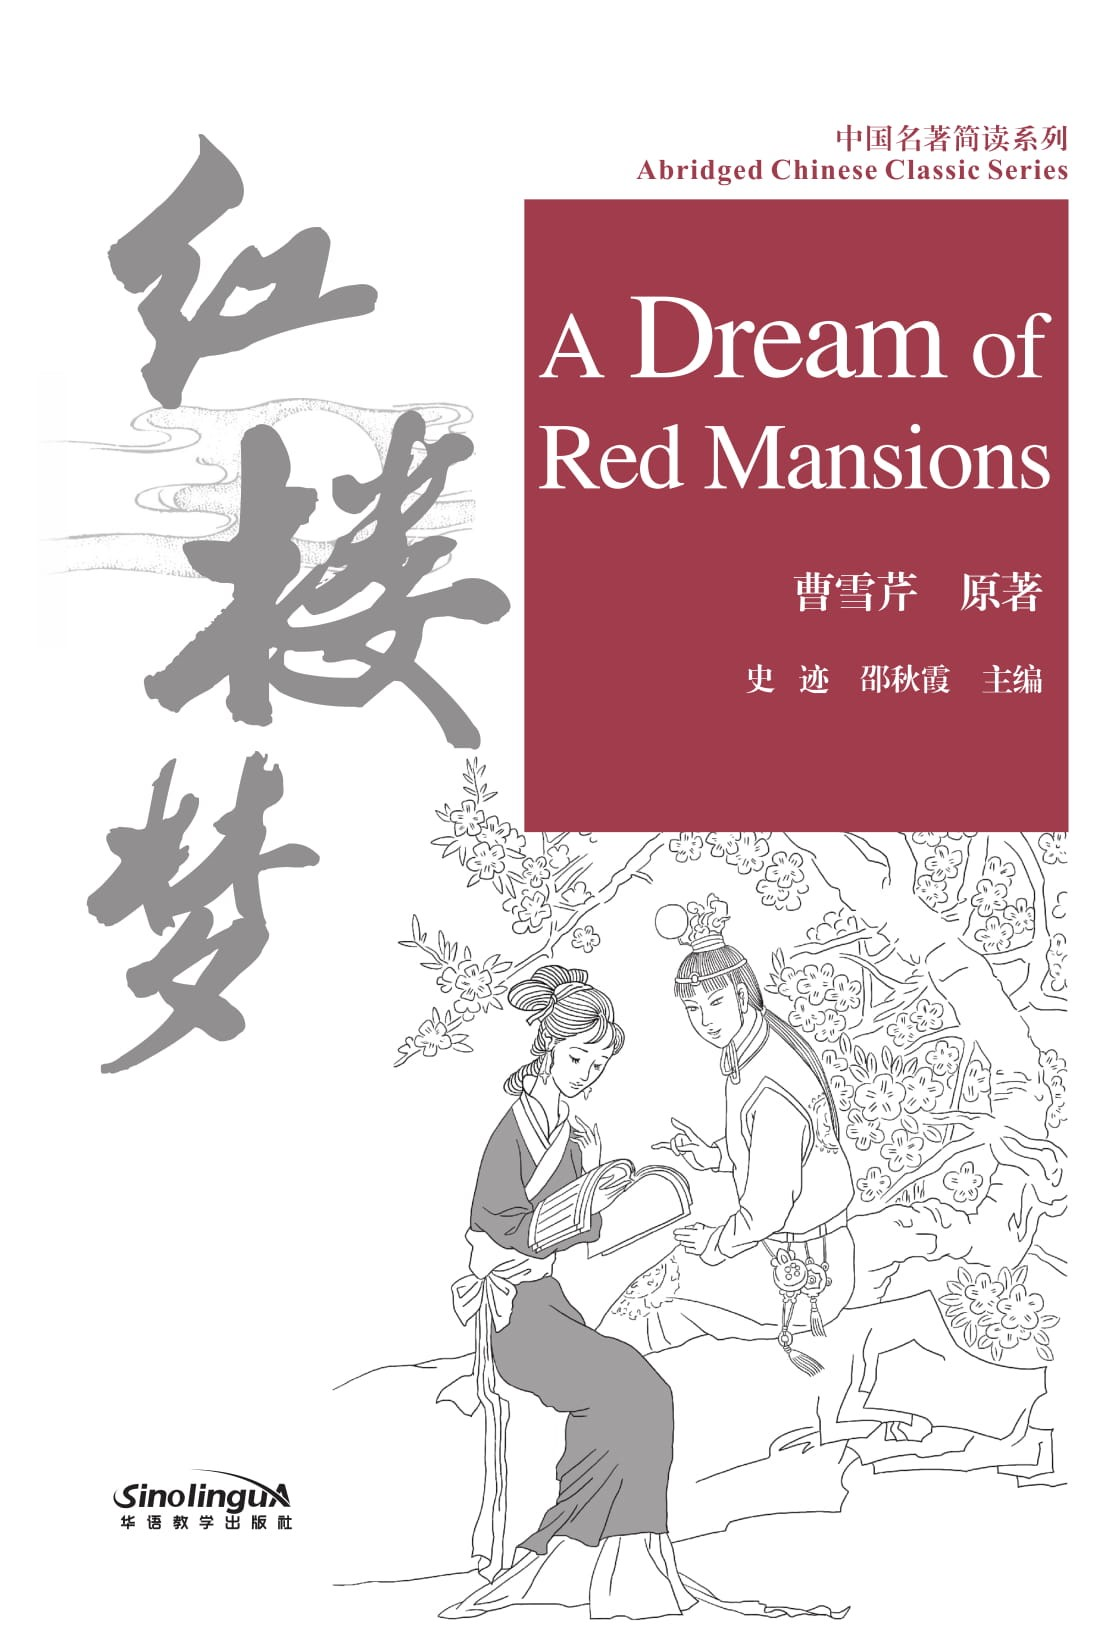 Abridged Chinese Classic Series A Dream Of Red Mansions